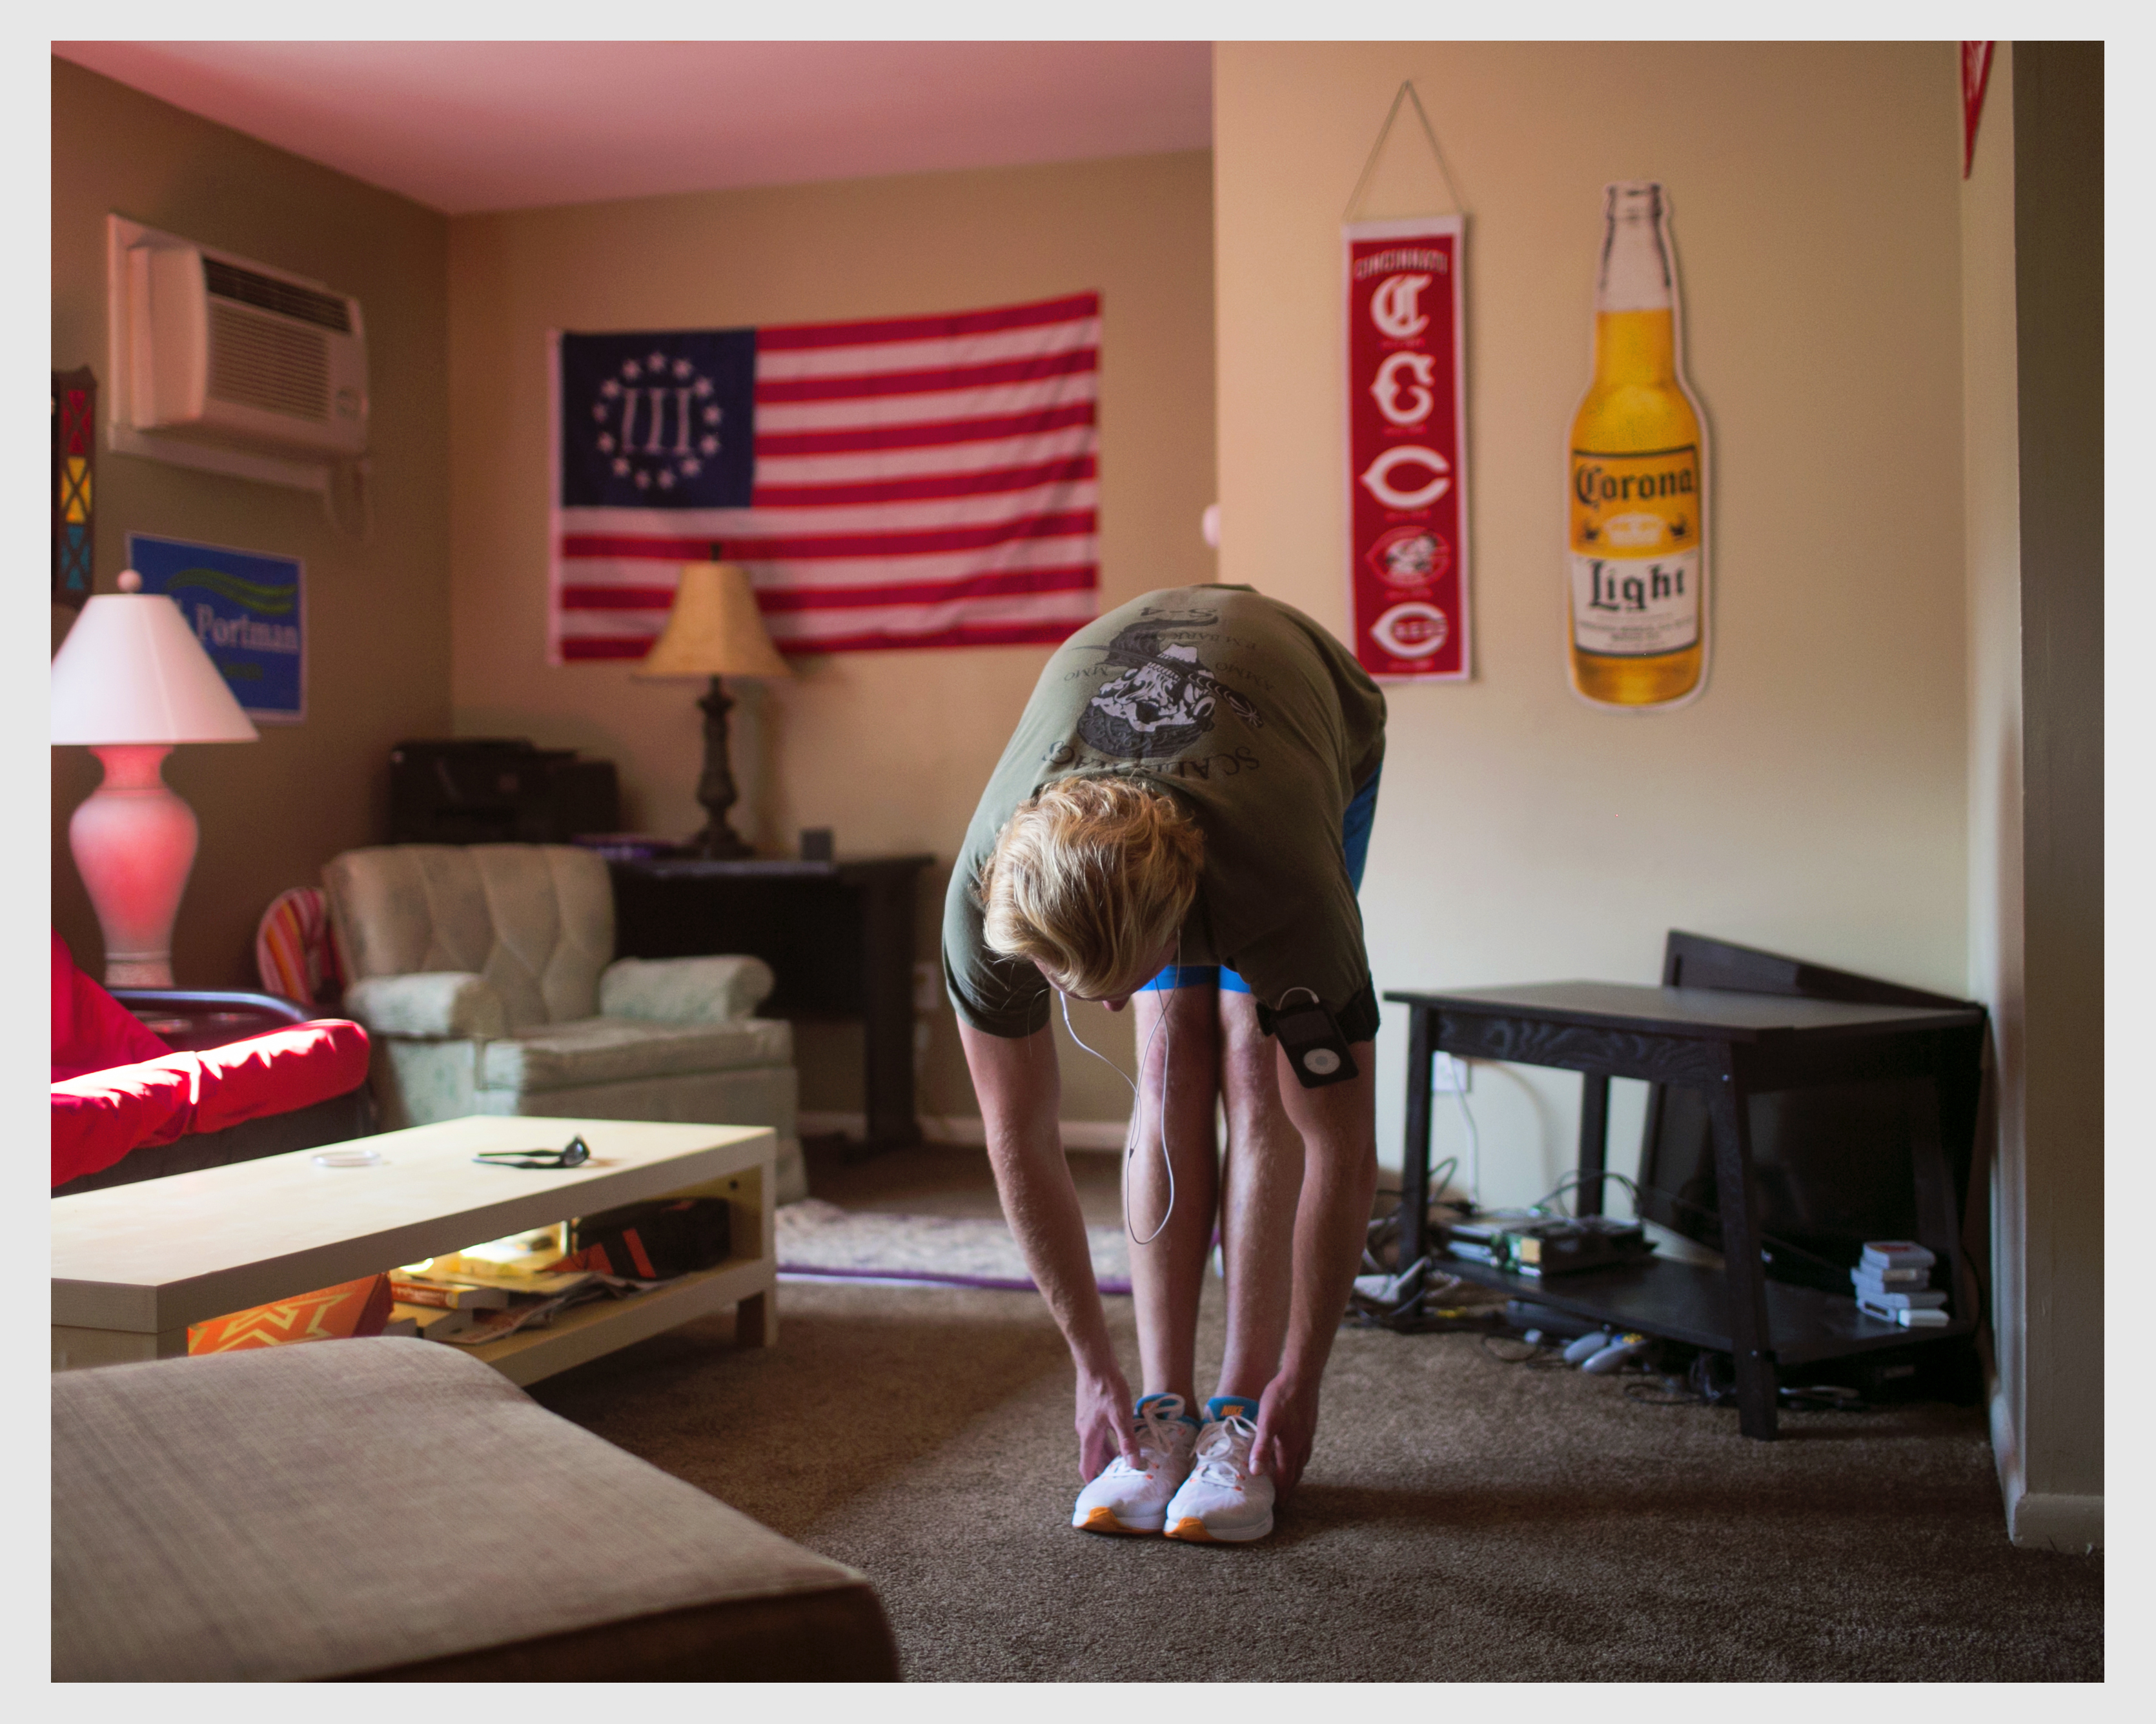 Alexander Hale, 25, a philosophy major at Miami University of Ohio, stretches at his apartment before going for a jog on Aug. 26, 2016. Hale enlisted in the Marine Corps after high school and stays in shape so that he's eligible to rejoin the military if he chooses.